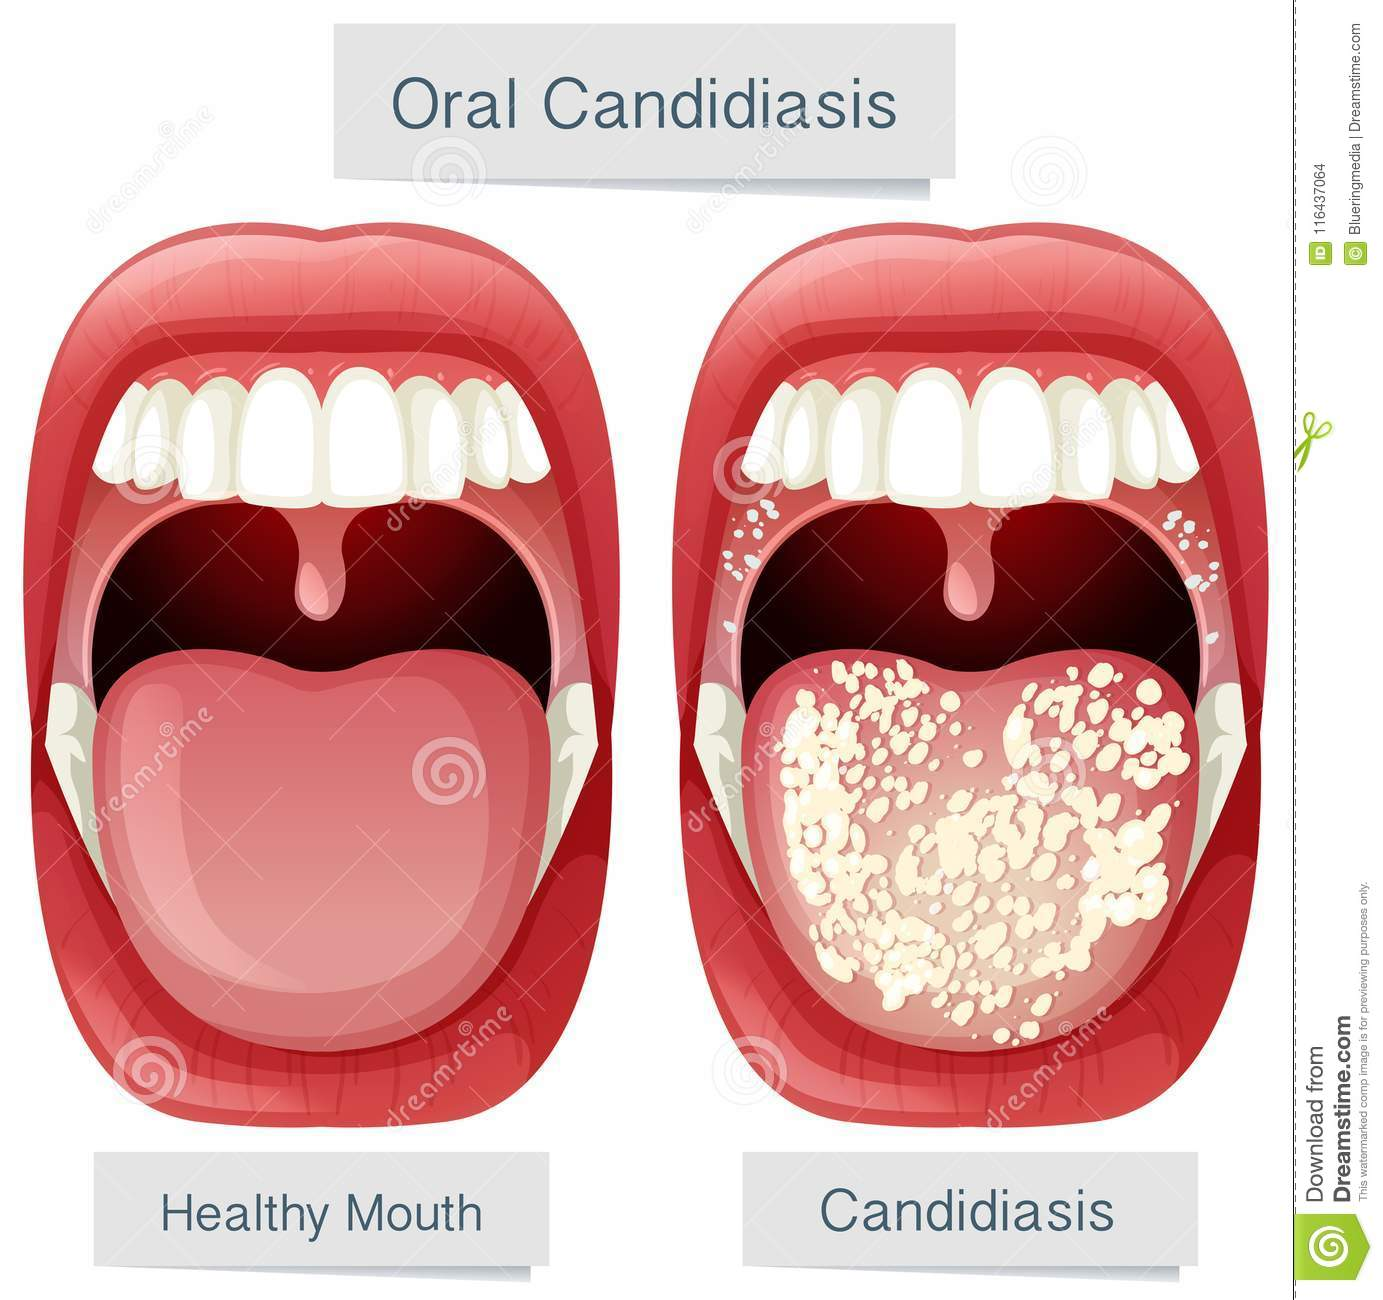 Human Mouth Anatomy Oral Candidiasis Stock Vector Illustration Of